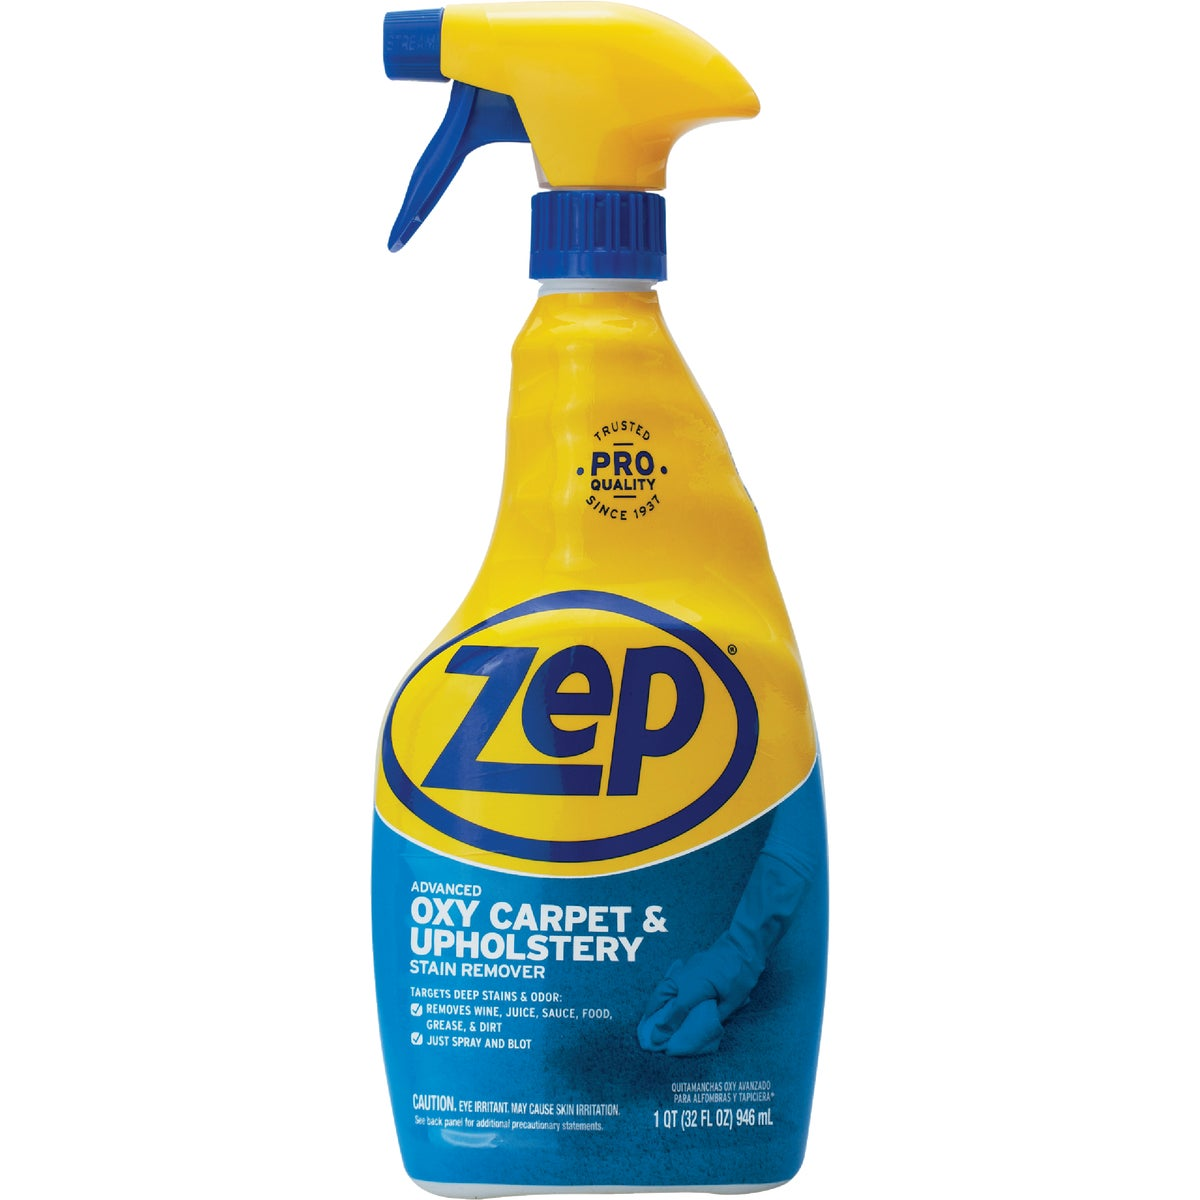 32OZ OXY CARPET CLEANER - ZUOXSR32 by Zep Enforcer Inc